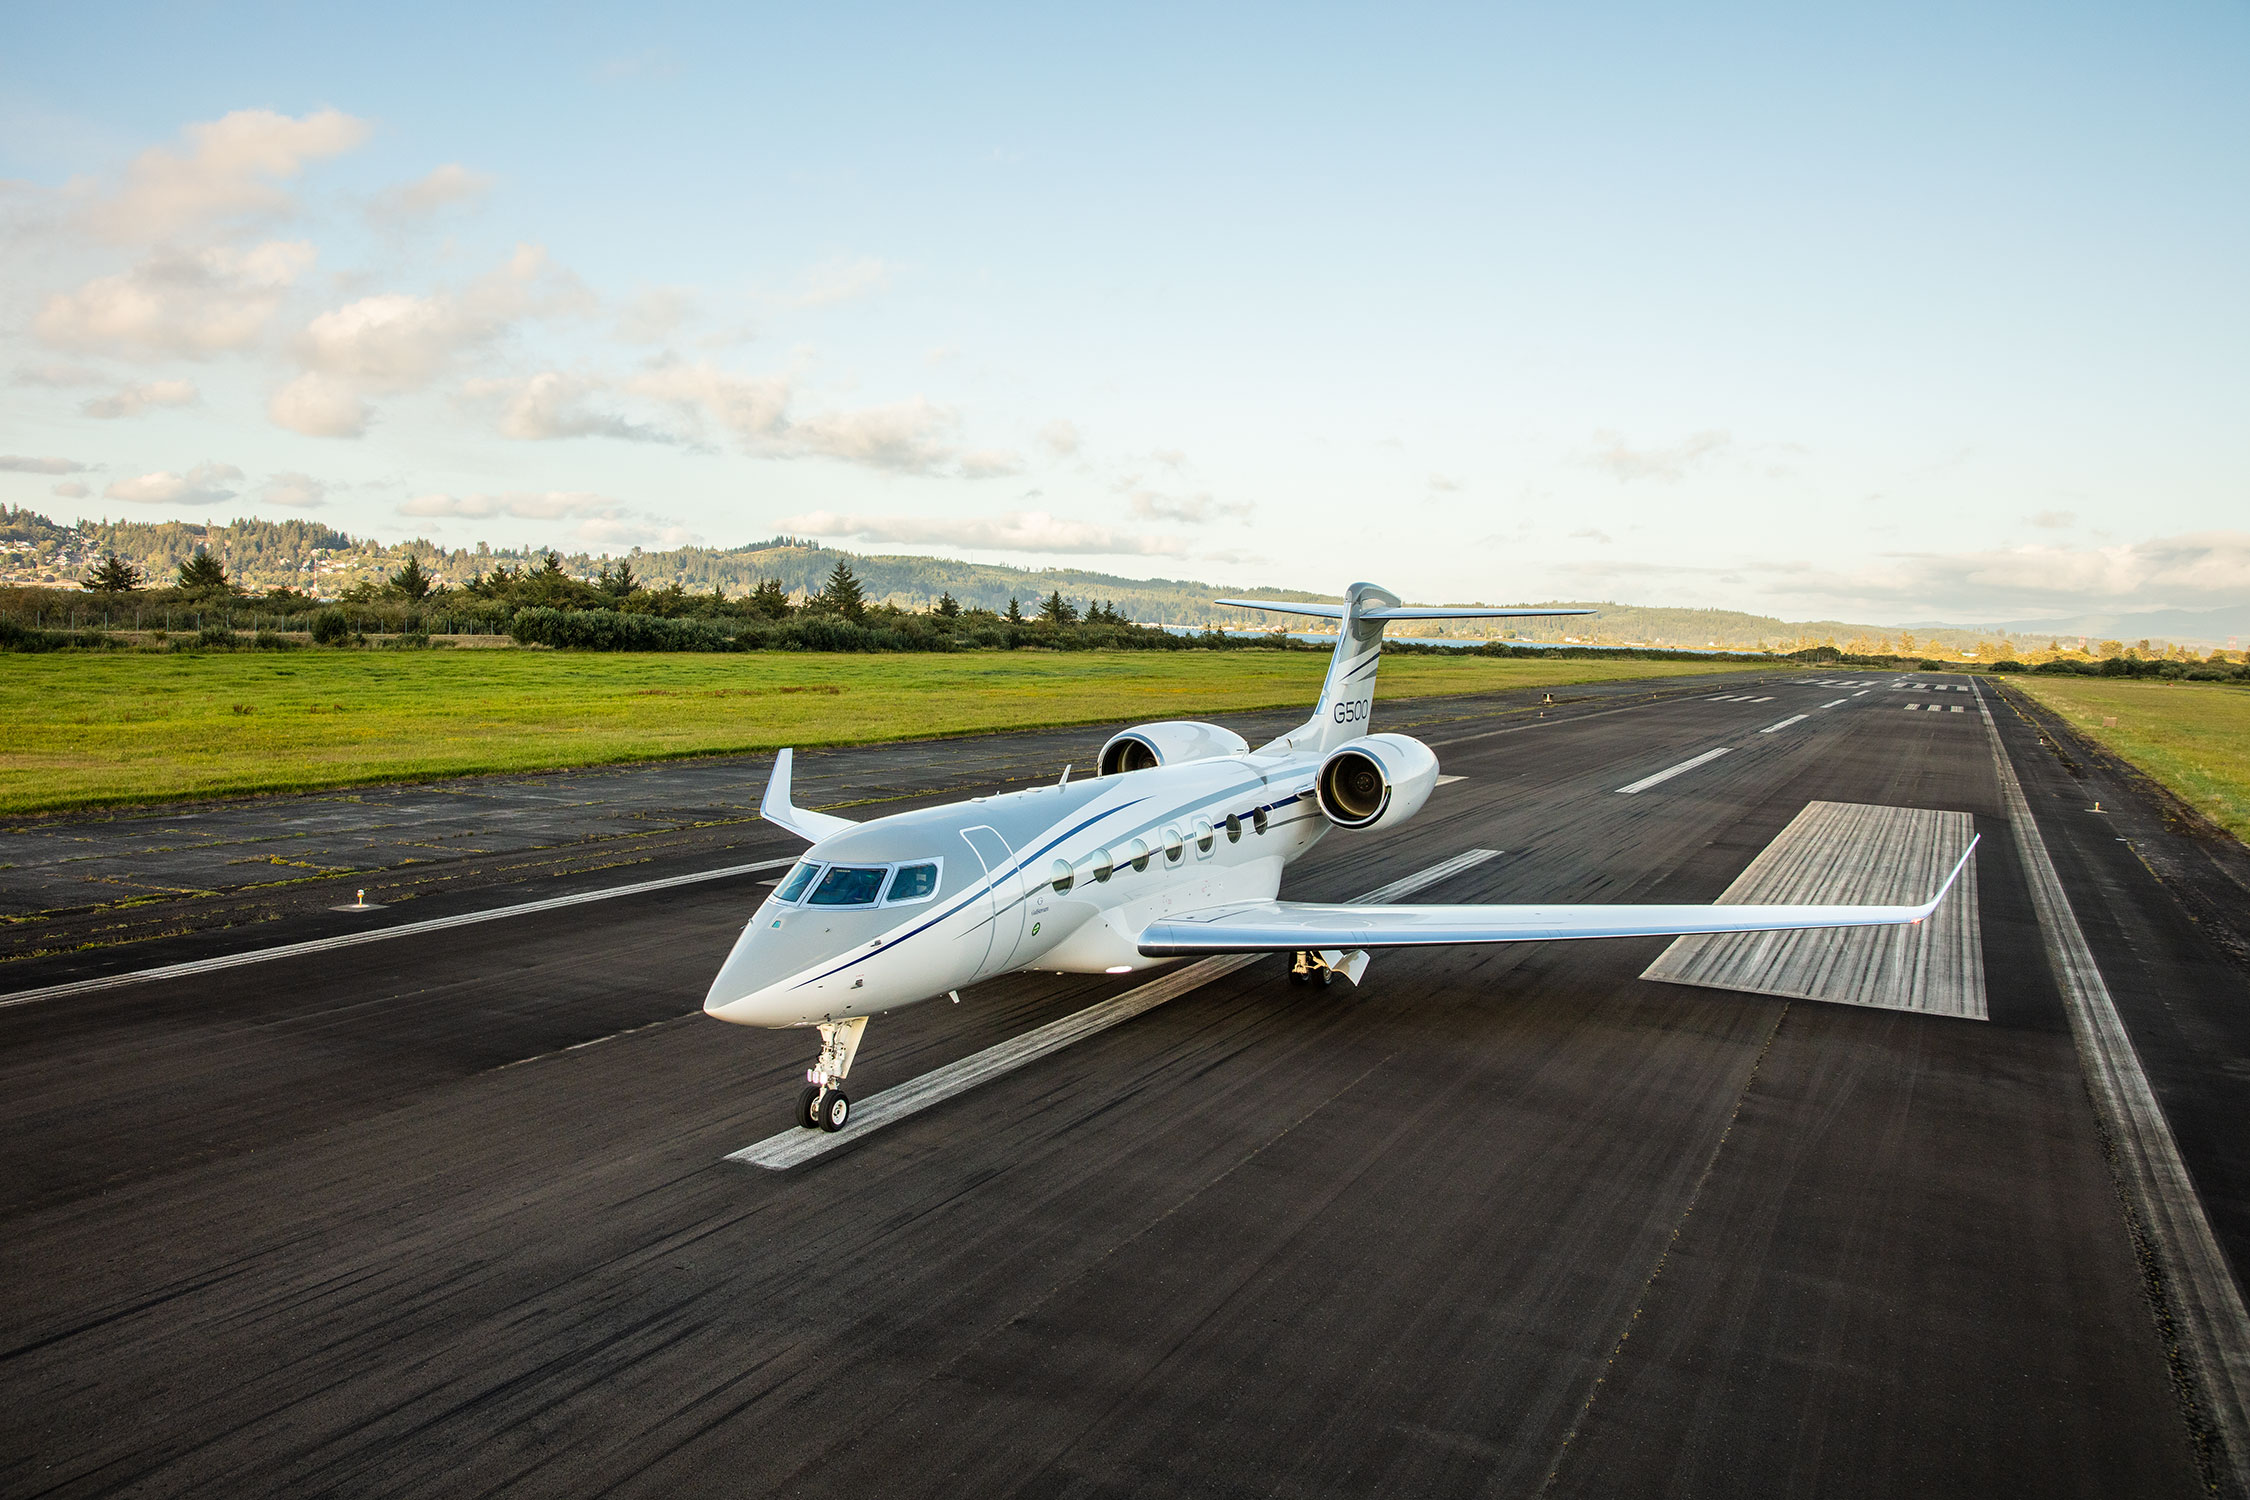 G500 aircraft parked on runway with green fields and trees in the distance